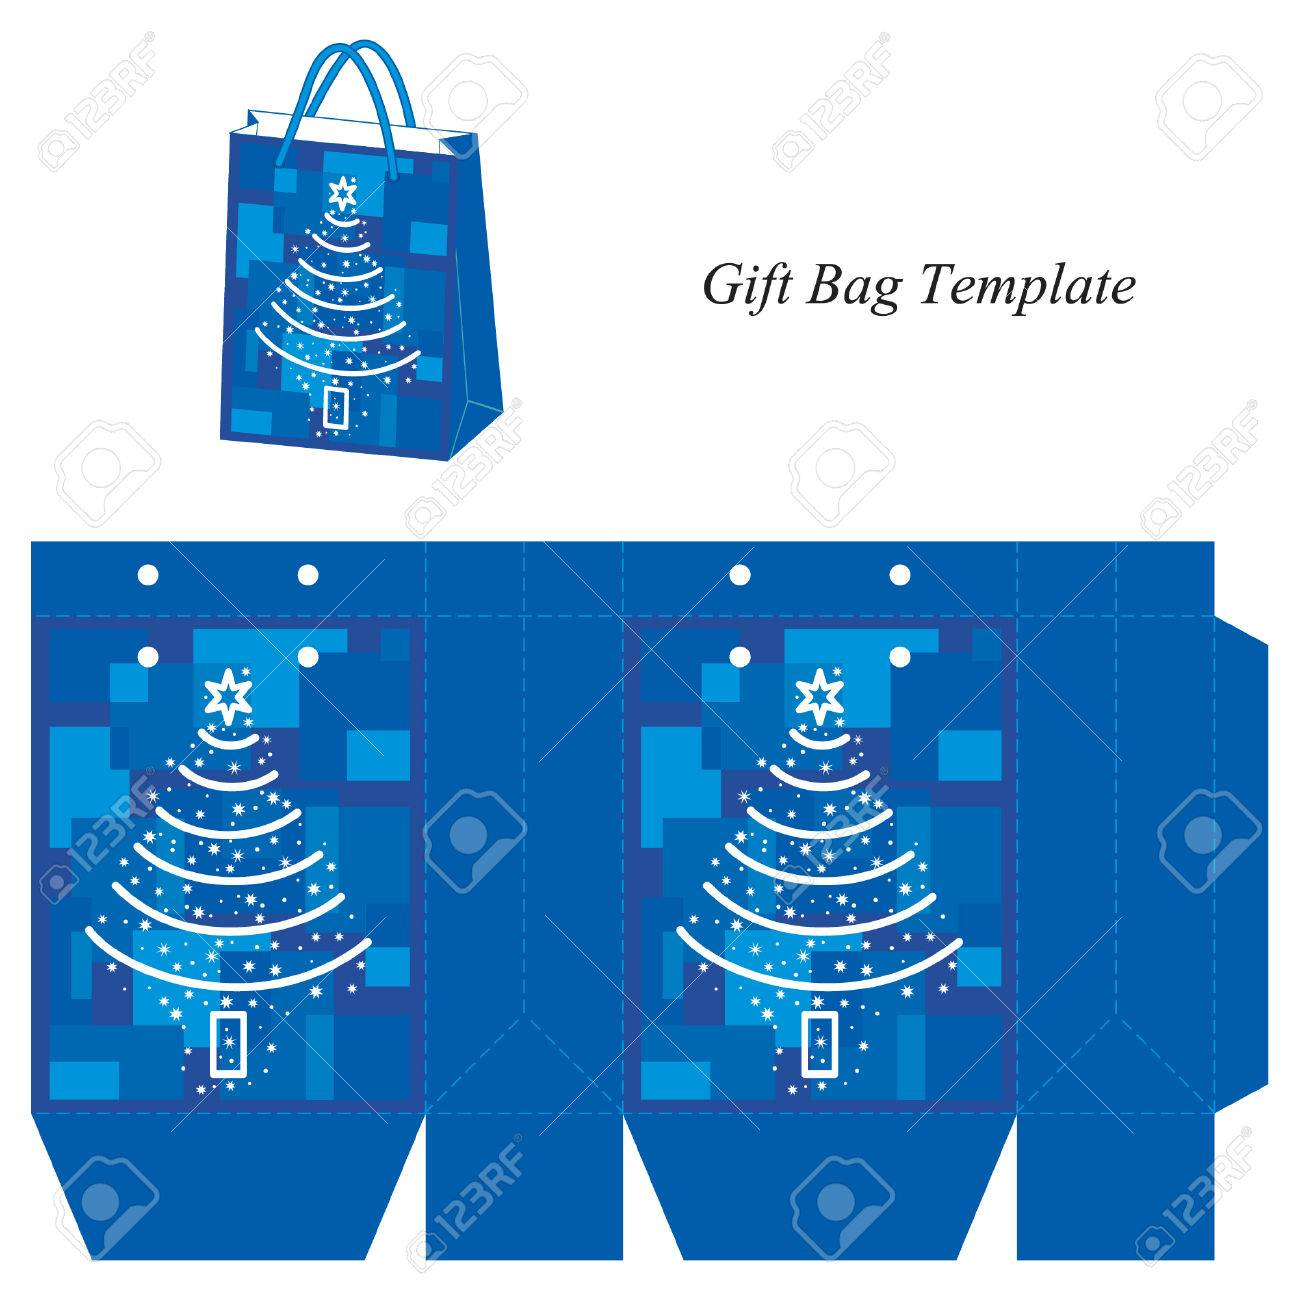 Christmas Gift Bag Template Vector Illustration Isolated Stock